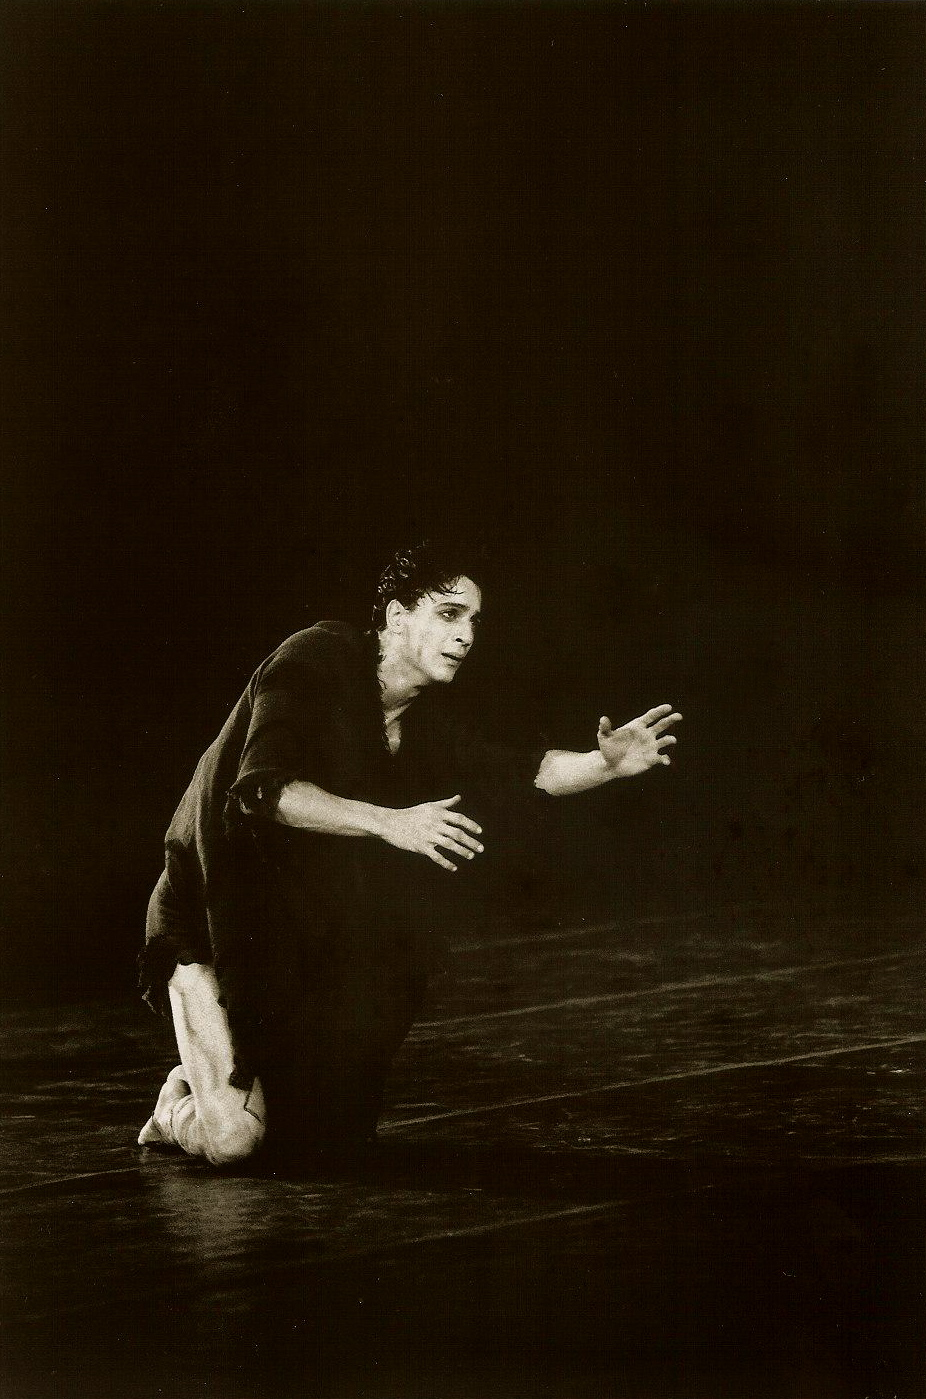 Le Fils prodigue - G.Balanchine